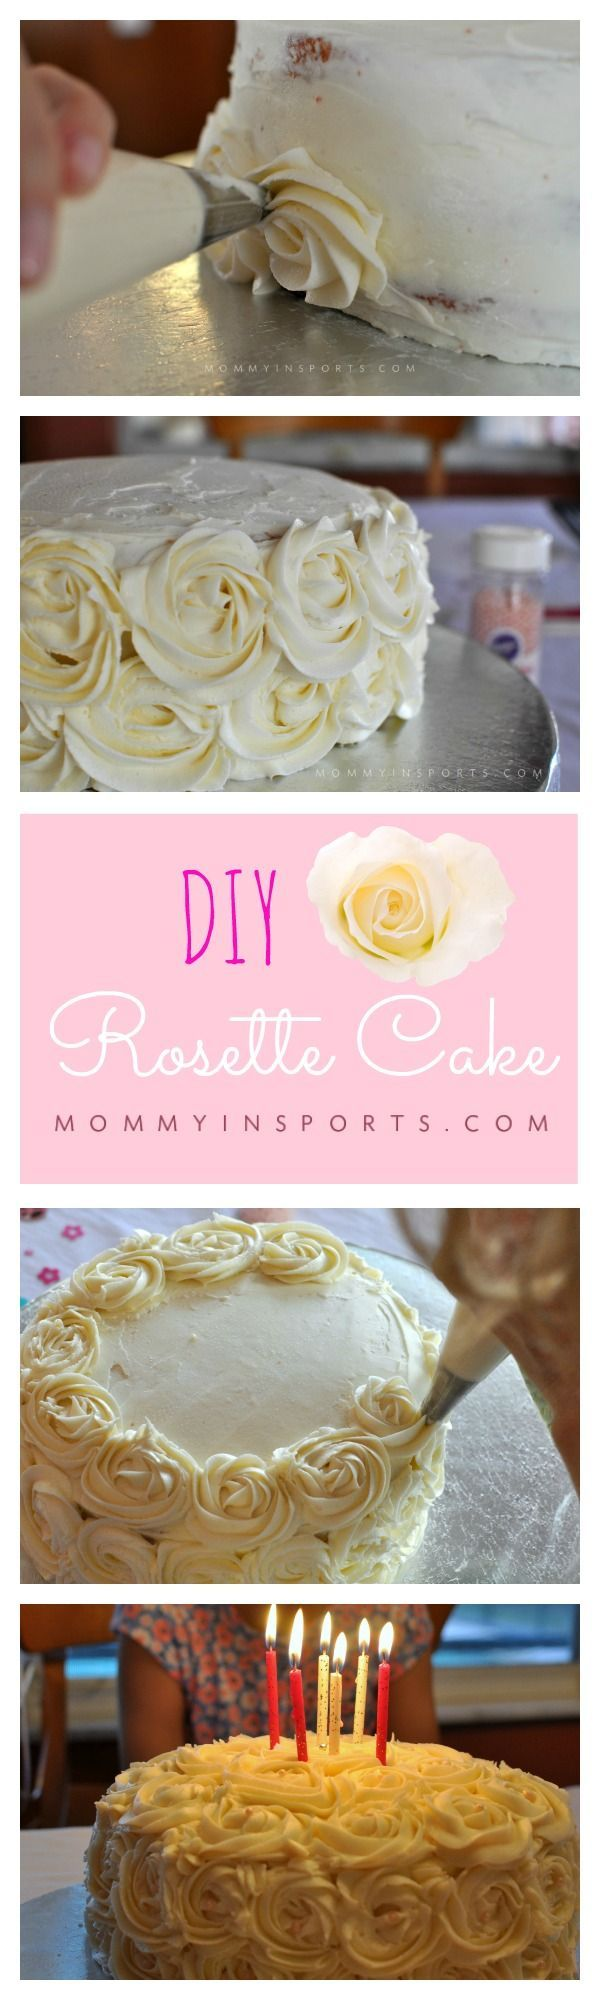 DIY Rosette Cake Rosettes and Super easy